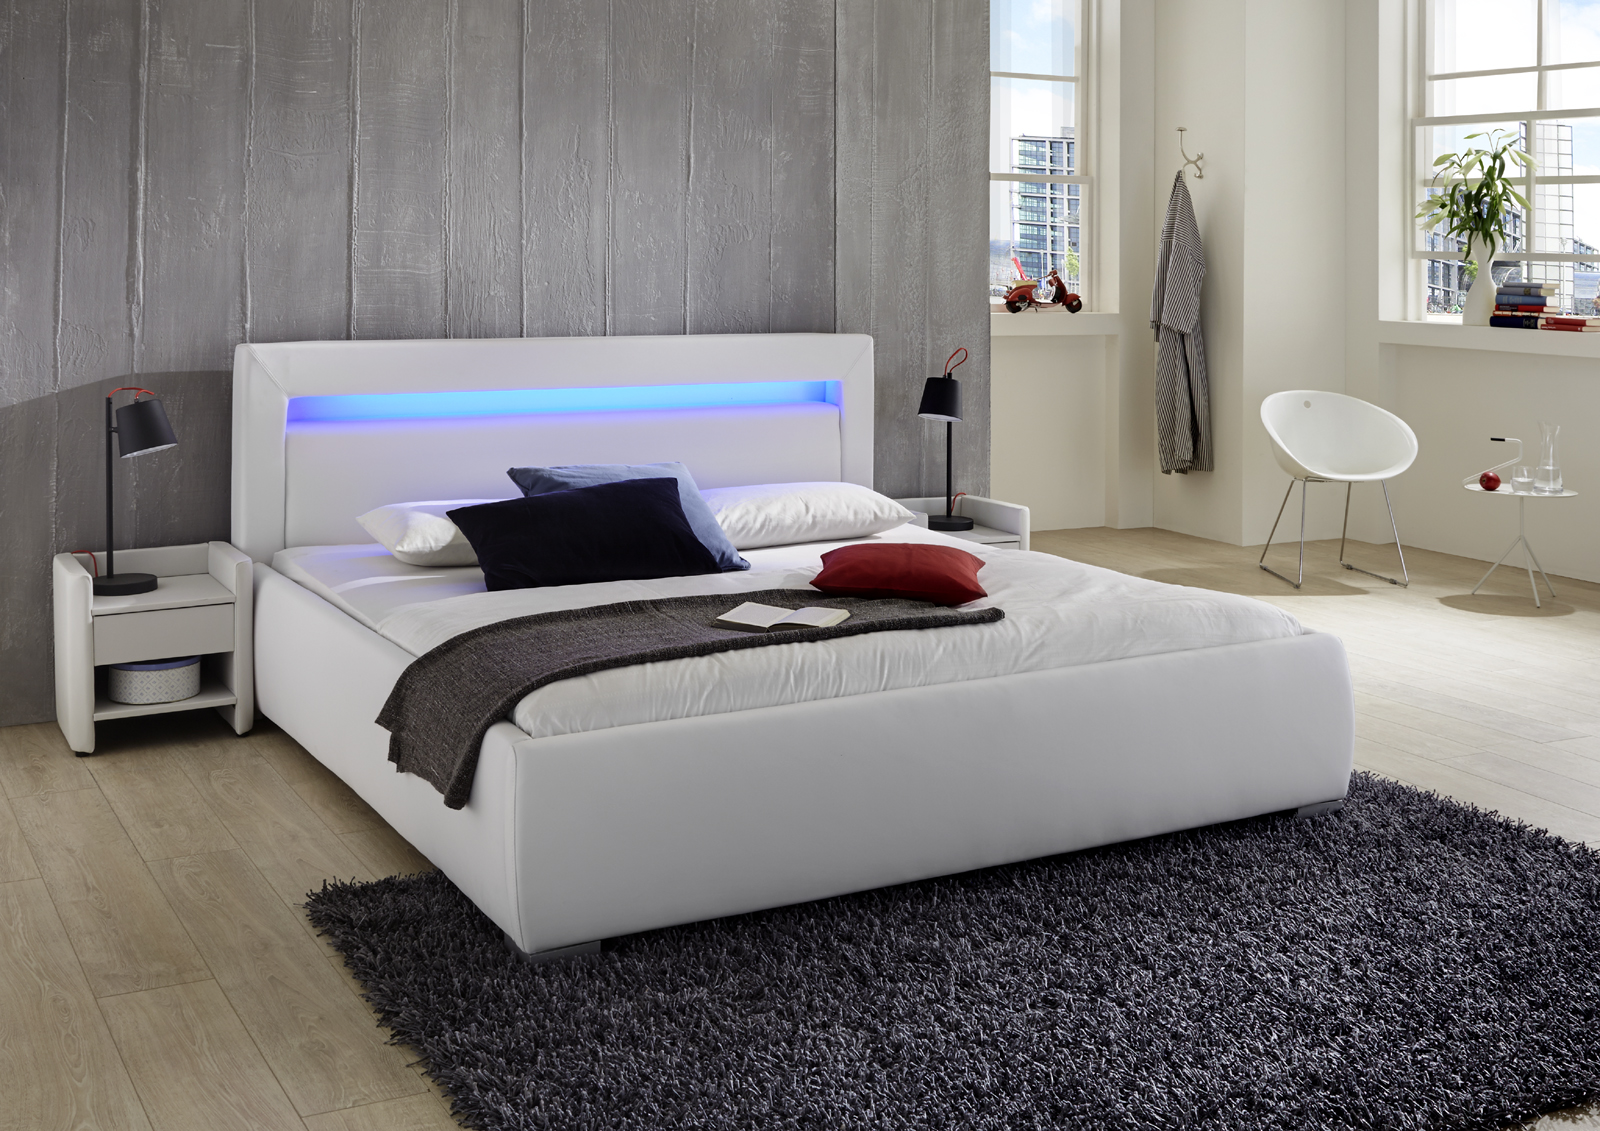 sam polsterbett 140 cm wei lumina led g nstig. Black Bedroom Furniture Sets. Home Design Ideas